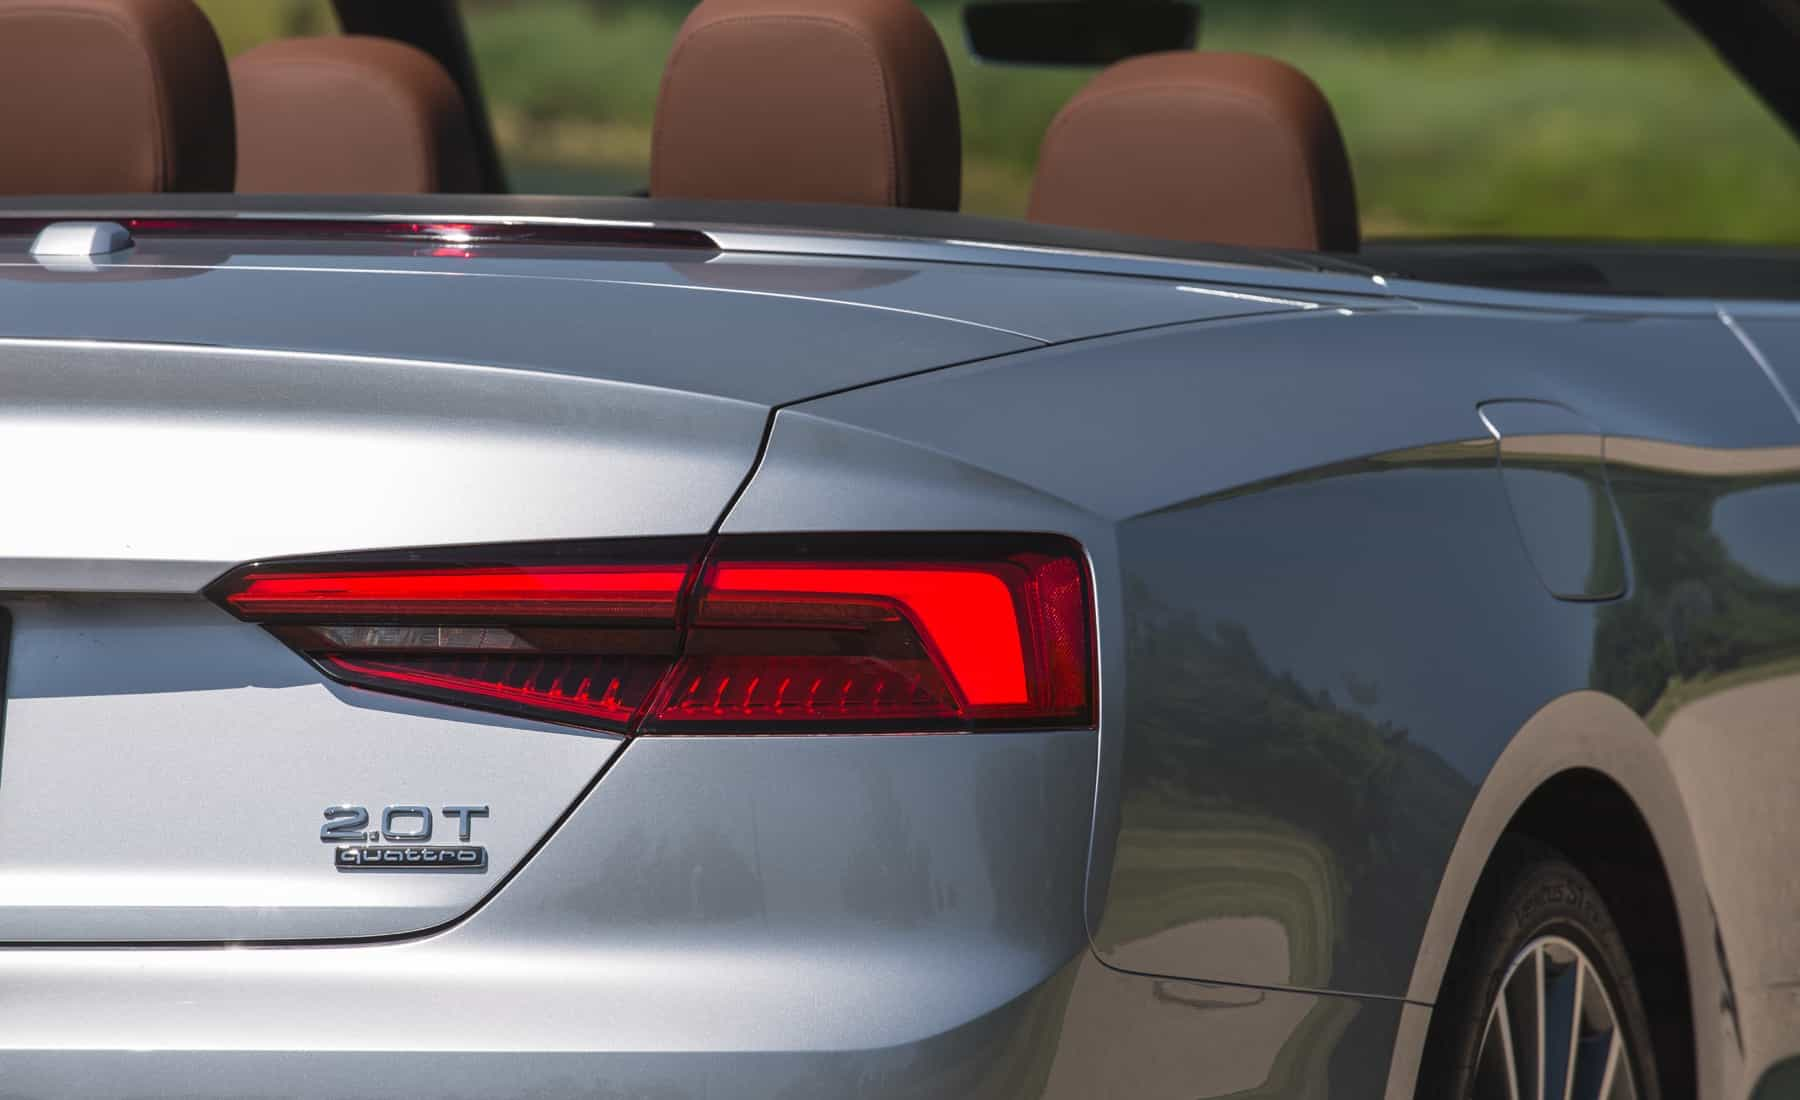 2018 Audi A5 Cabriolet Exterior View Taillight (Photo 15 of 45)